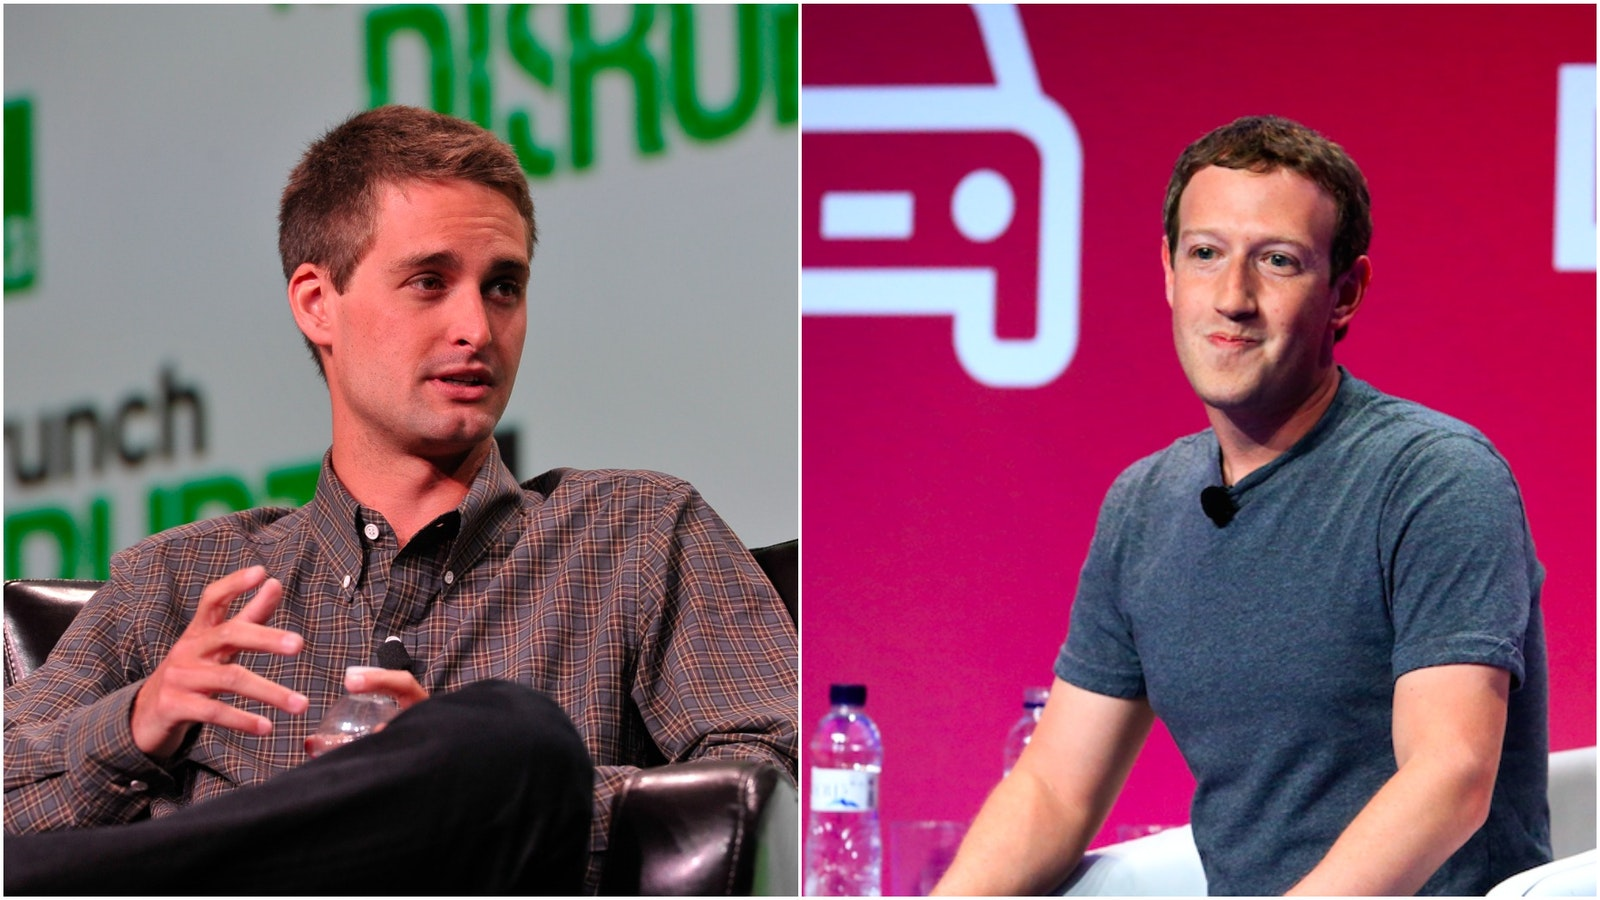 Snap CEO Evan Spiegel and Facebook CEO Mark Zuckerberg. Photo by Flickr/TechCrunch and Bloomberg.